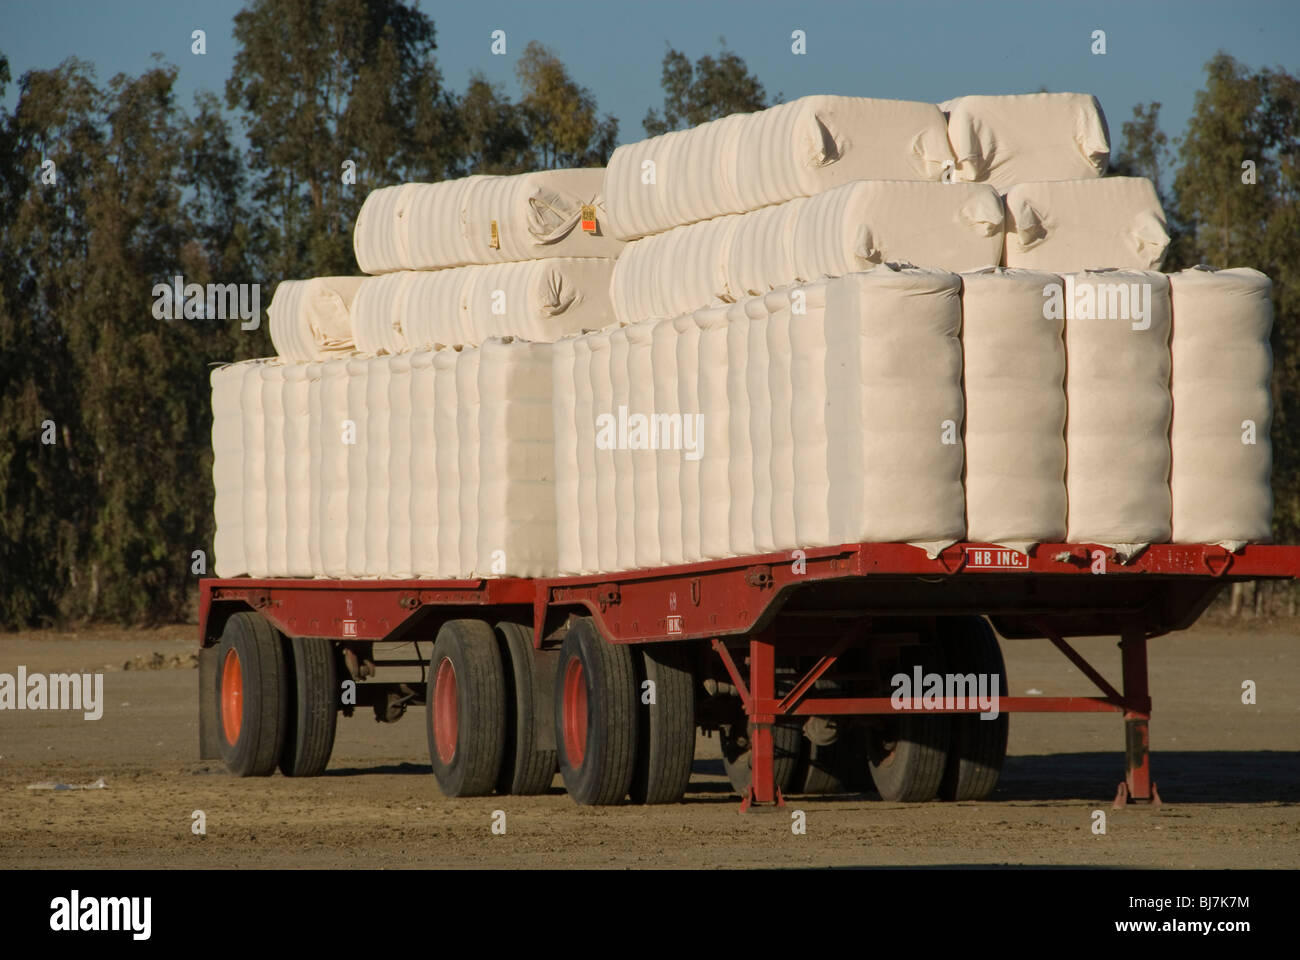 A truck trailer with cotton bales. - Stock Image